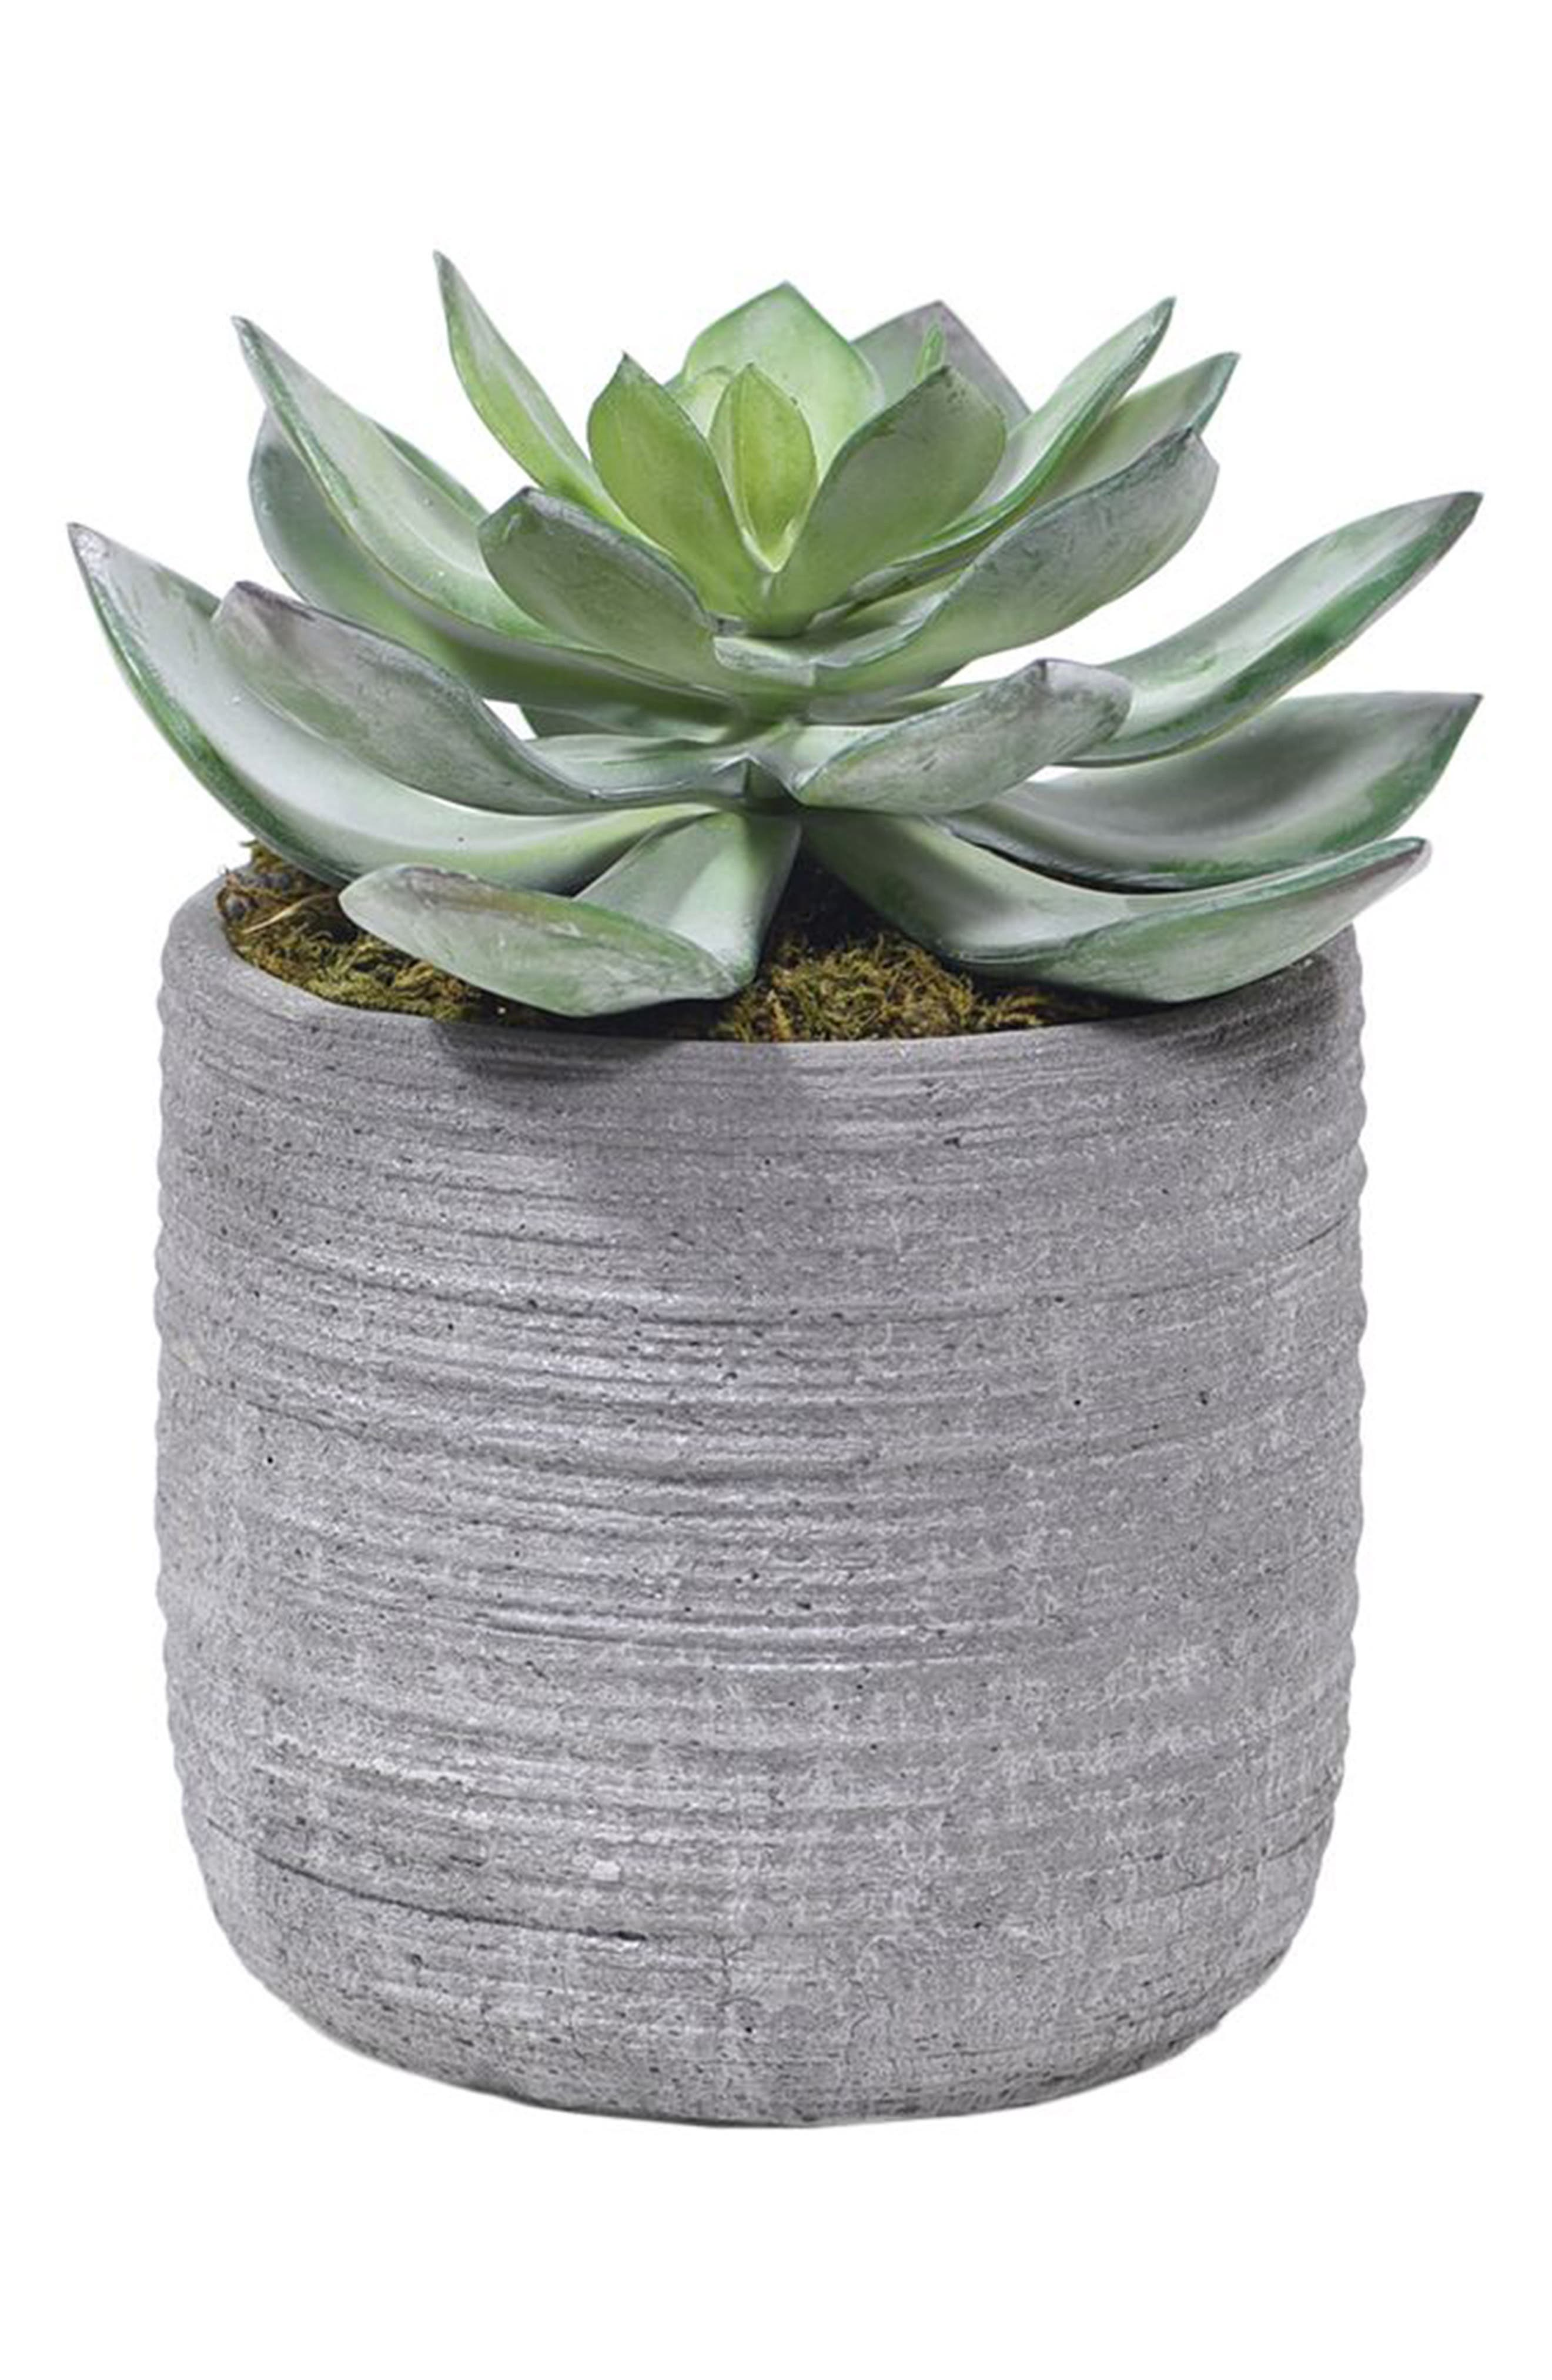 No need for a green thumb when you\\\'ve got this charming faux-dudleya planter to add a touch of desert cheer to your space and ace the succulent trend. Style Name: Bloomr Dudleya Succulent Planter Decoration. Style Number: 5820987. Available in stores.